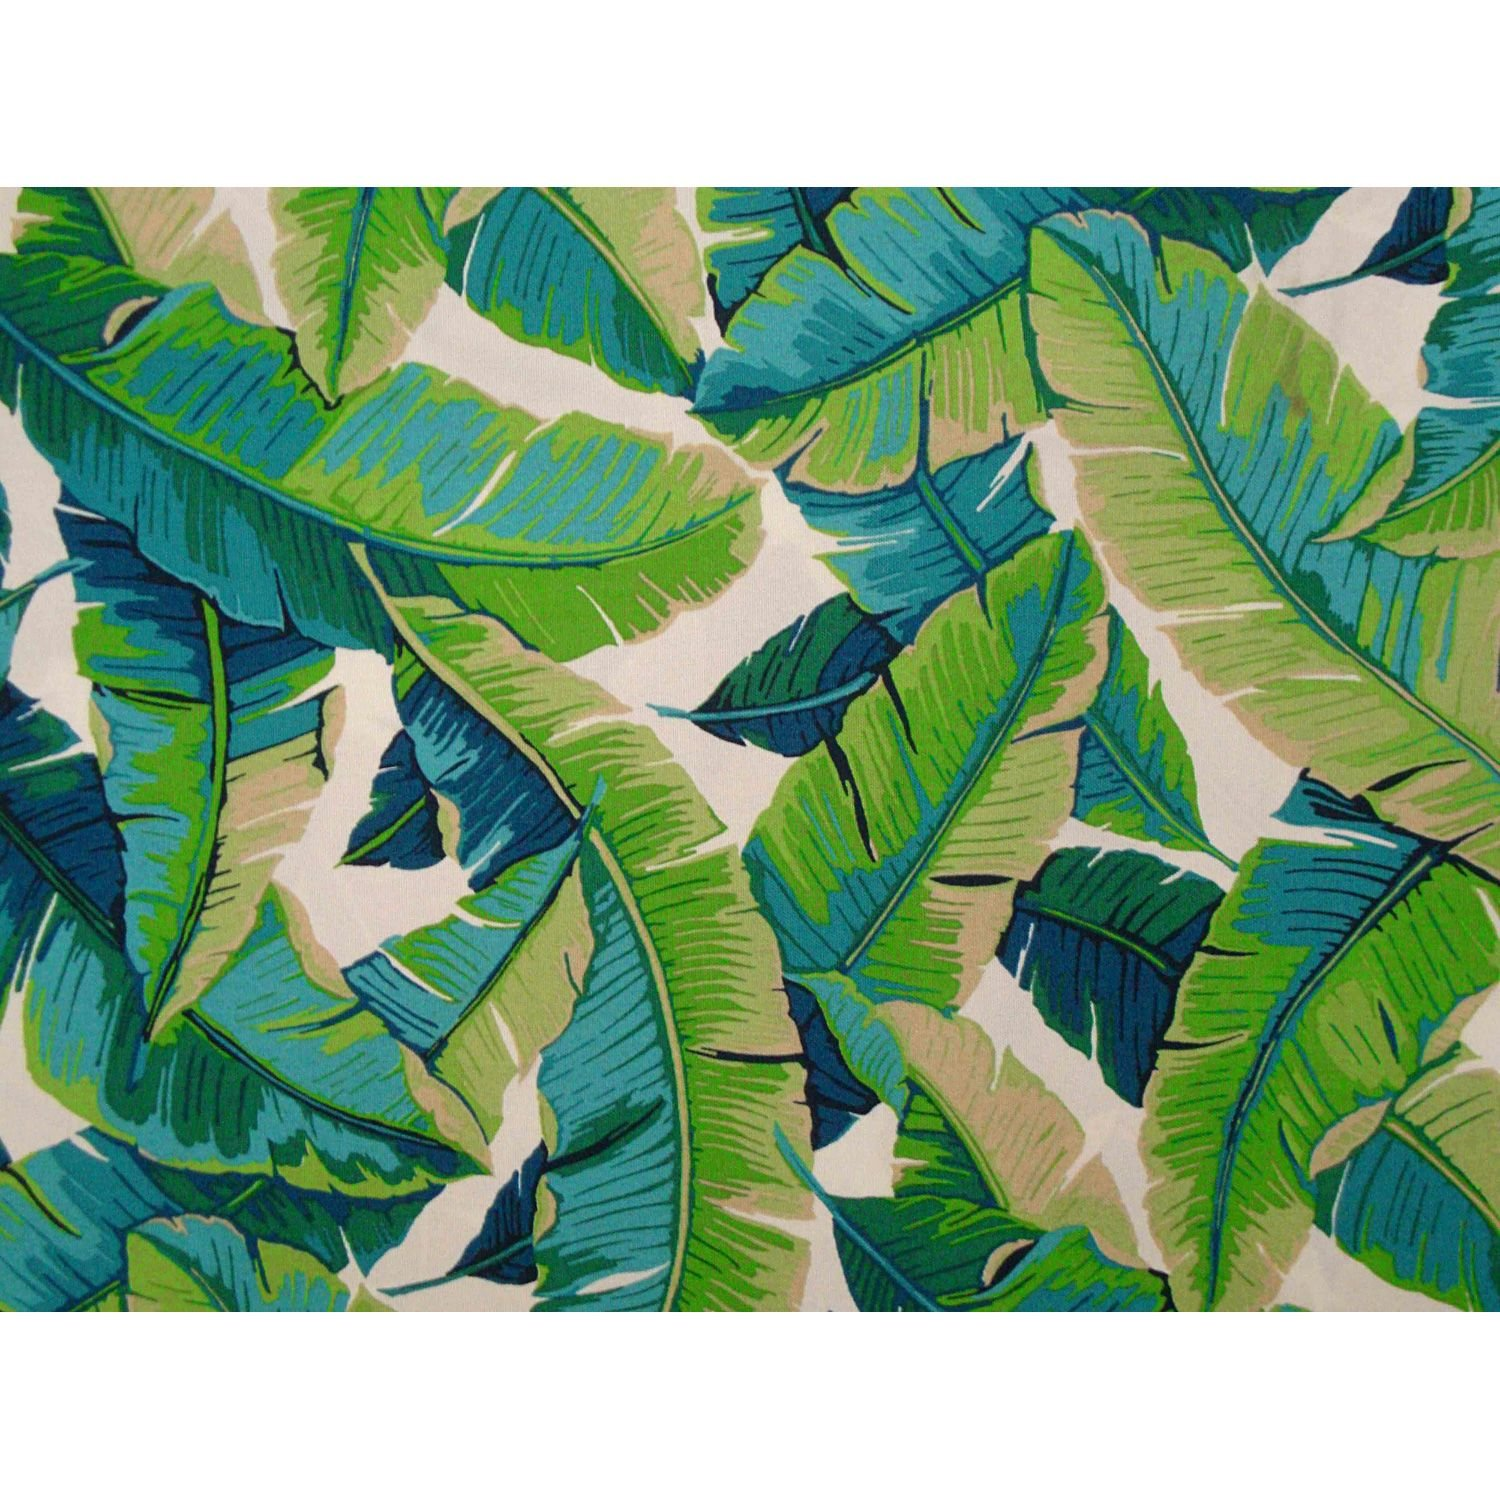 Balmoral Futon Cover Twin Size, Proudly Made in USA (Hawaiian Theme, Tropical Island, Banana Leaf Print, Available in Full, Queen, Twin and Other Sizes)